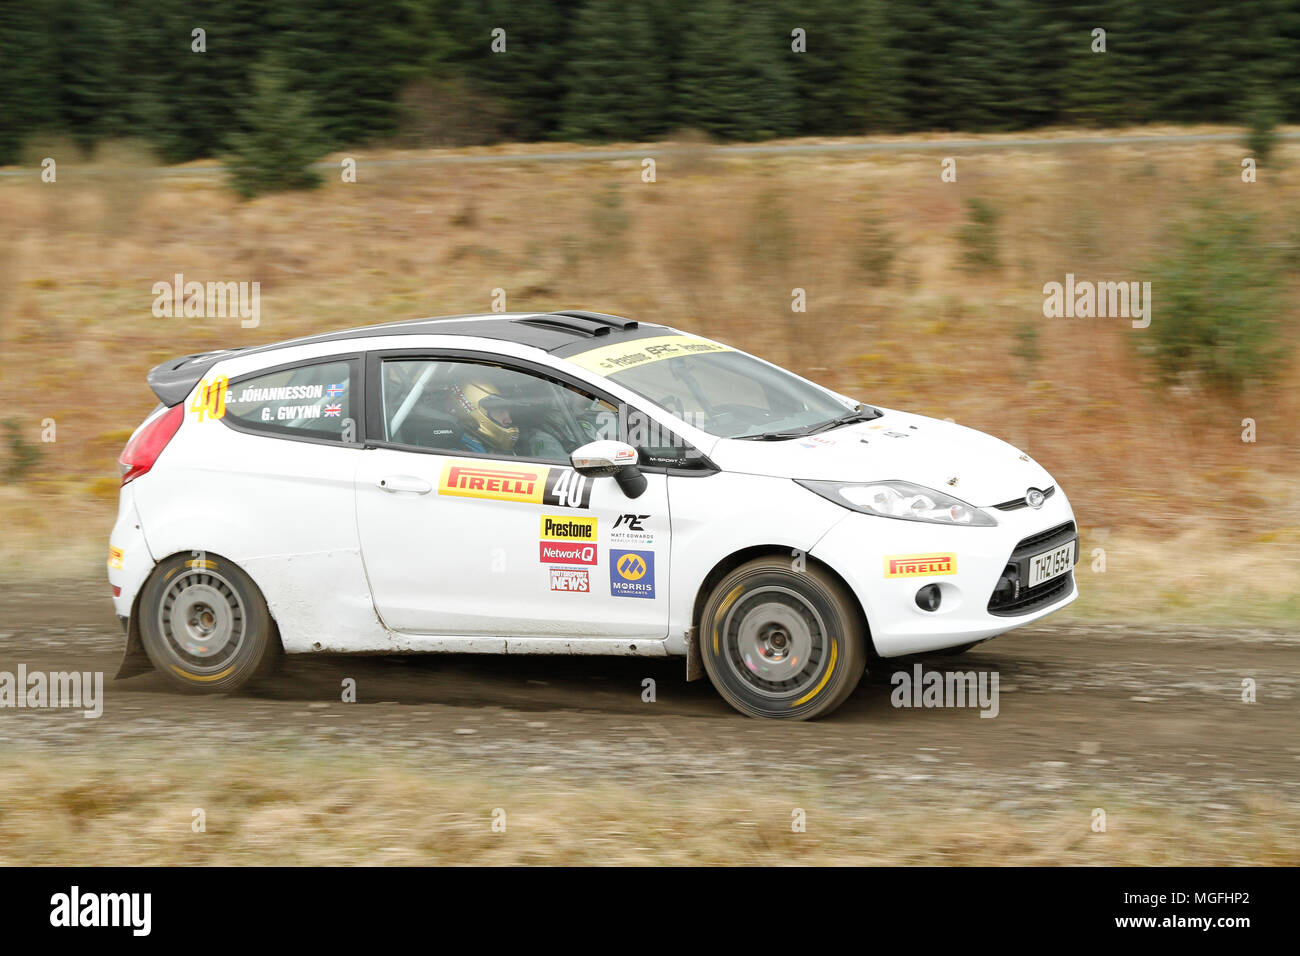 Kielder Forest, Northumberland, UK, 28 April 2018. Rally drivers compete in the Pirelli International Rally and second round of the Prestone British Rally Championship. (Special Stage 1 - Pundershaw 1). Andrew Cheal/Alamy Live News - Stock Image